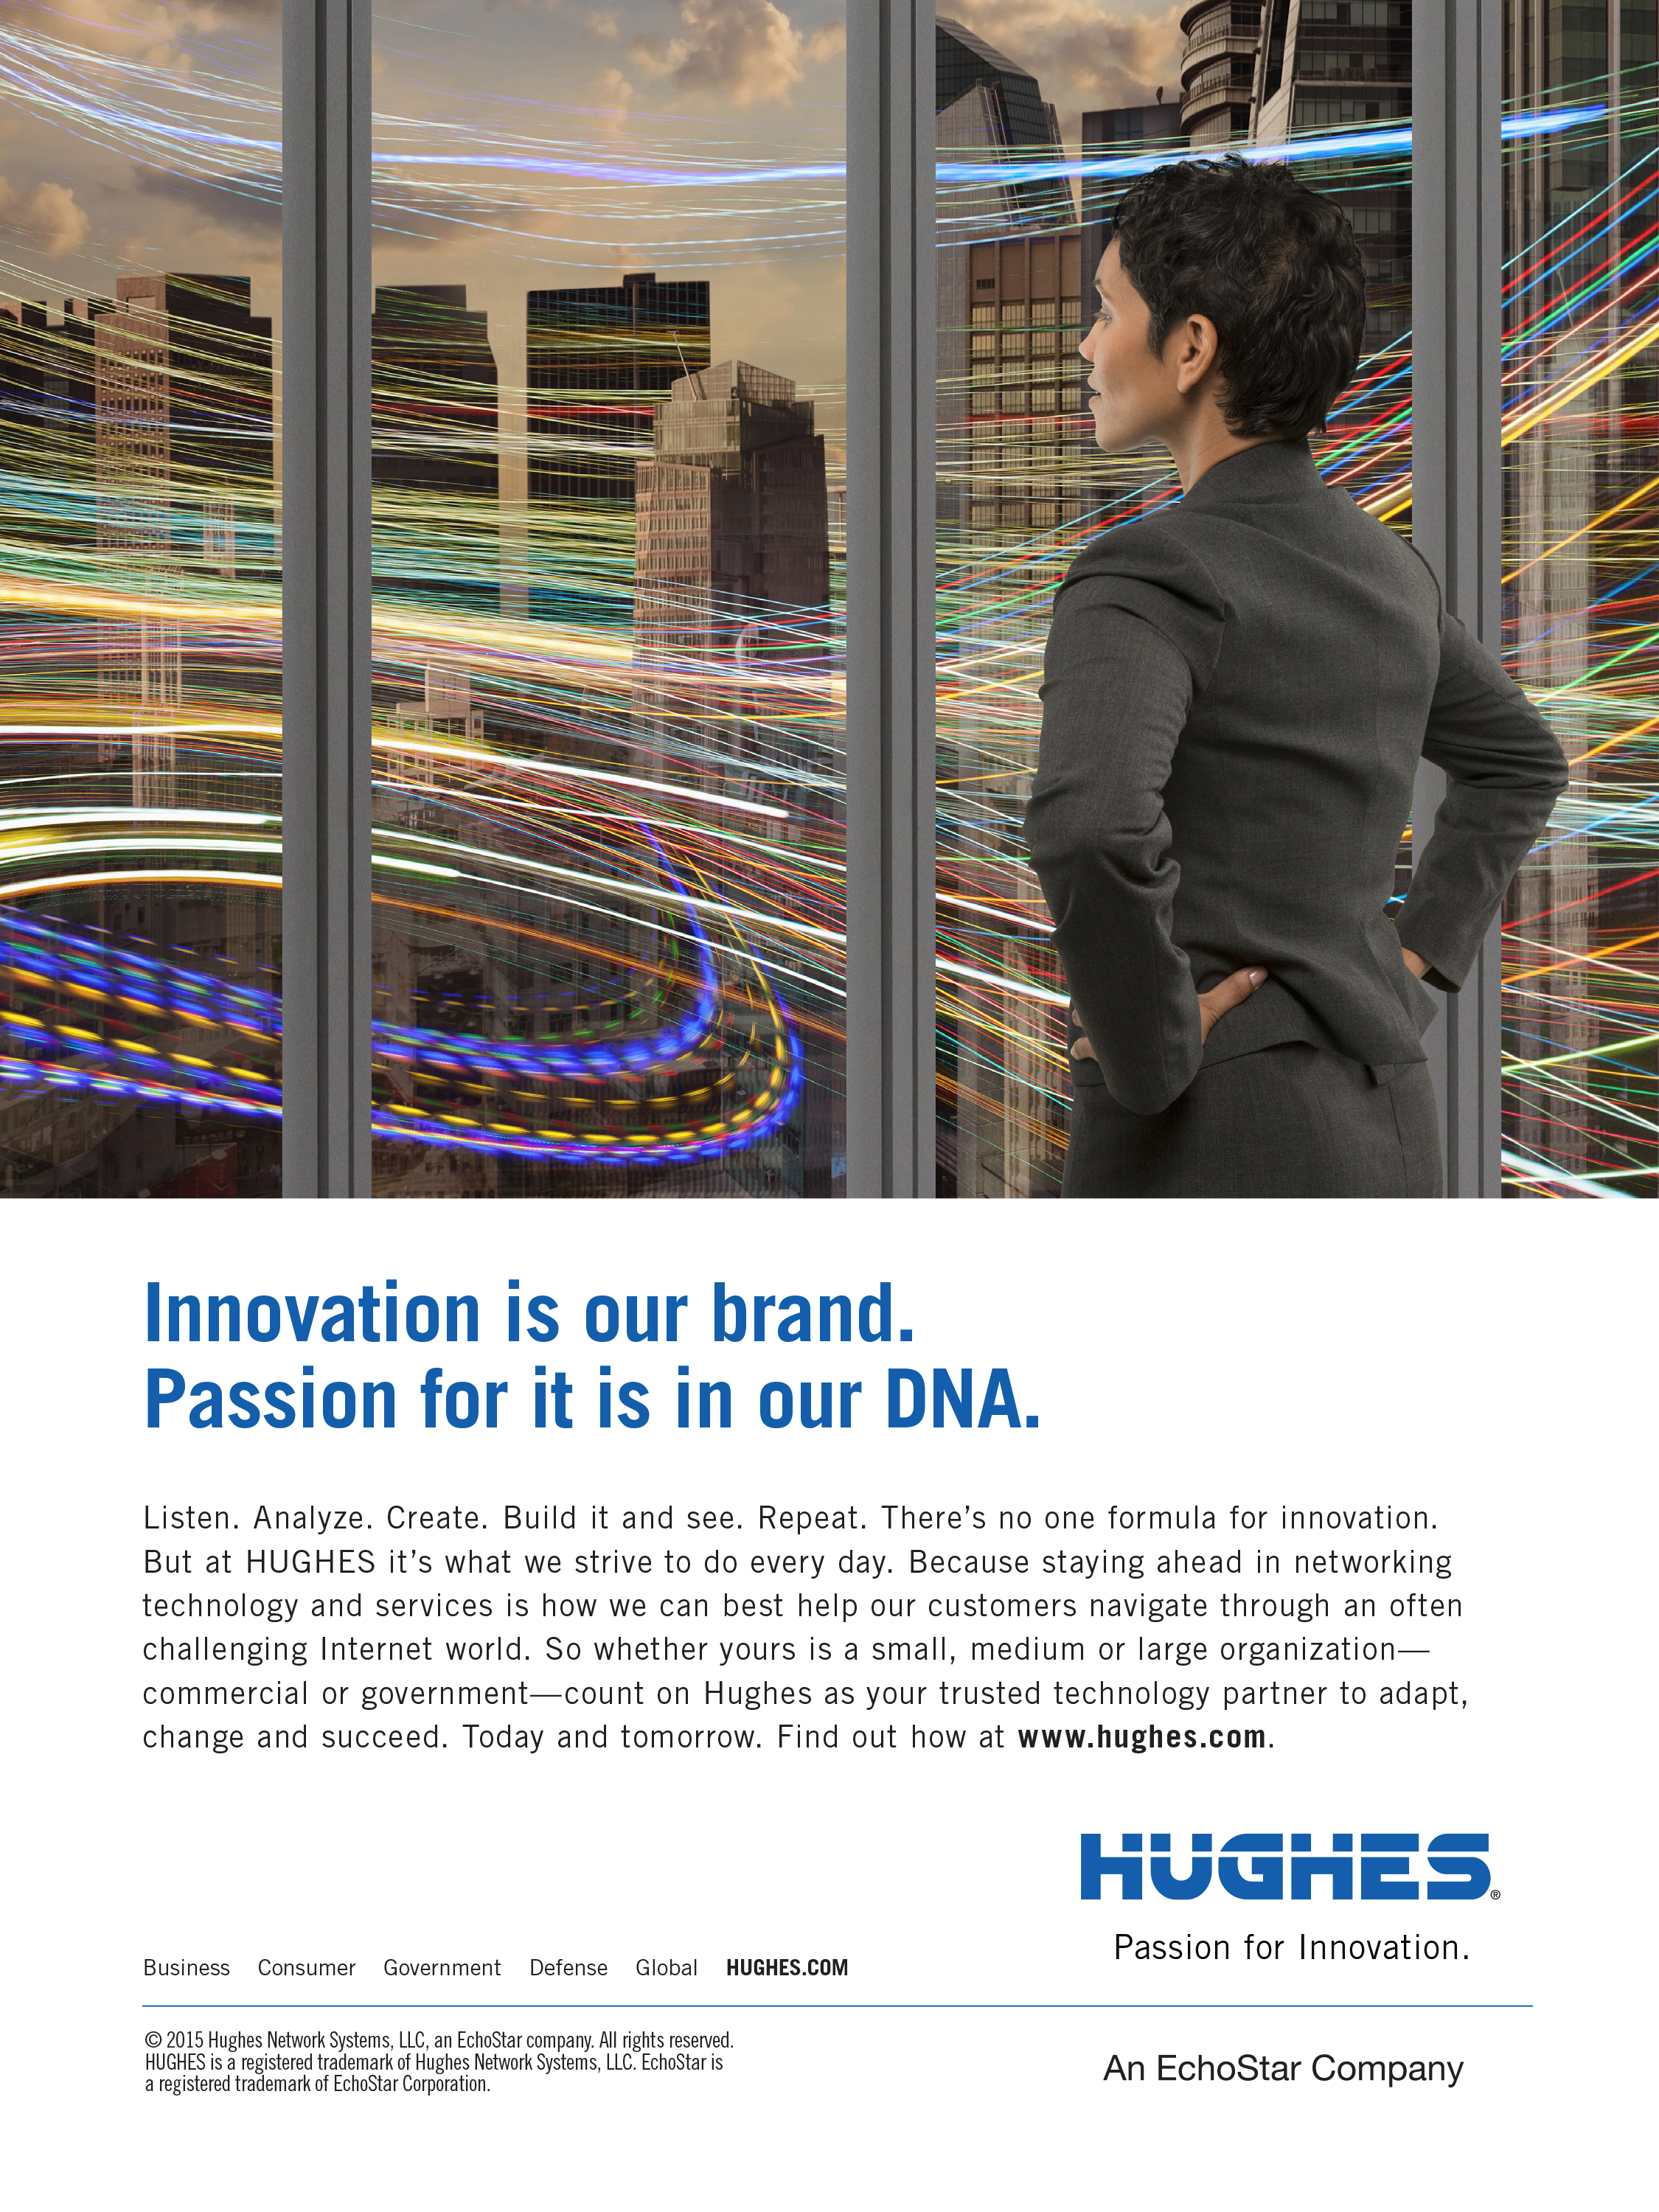 Hughes 2015 Corporate Ad FINAL